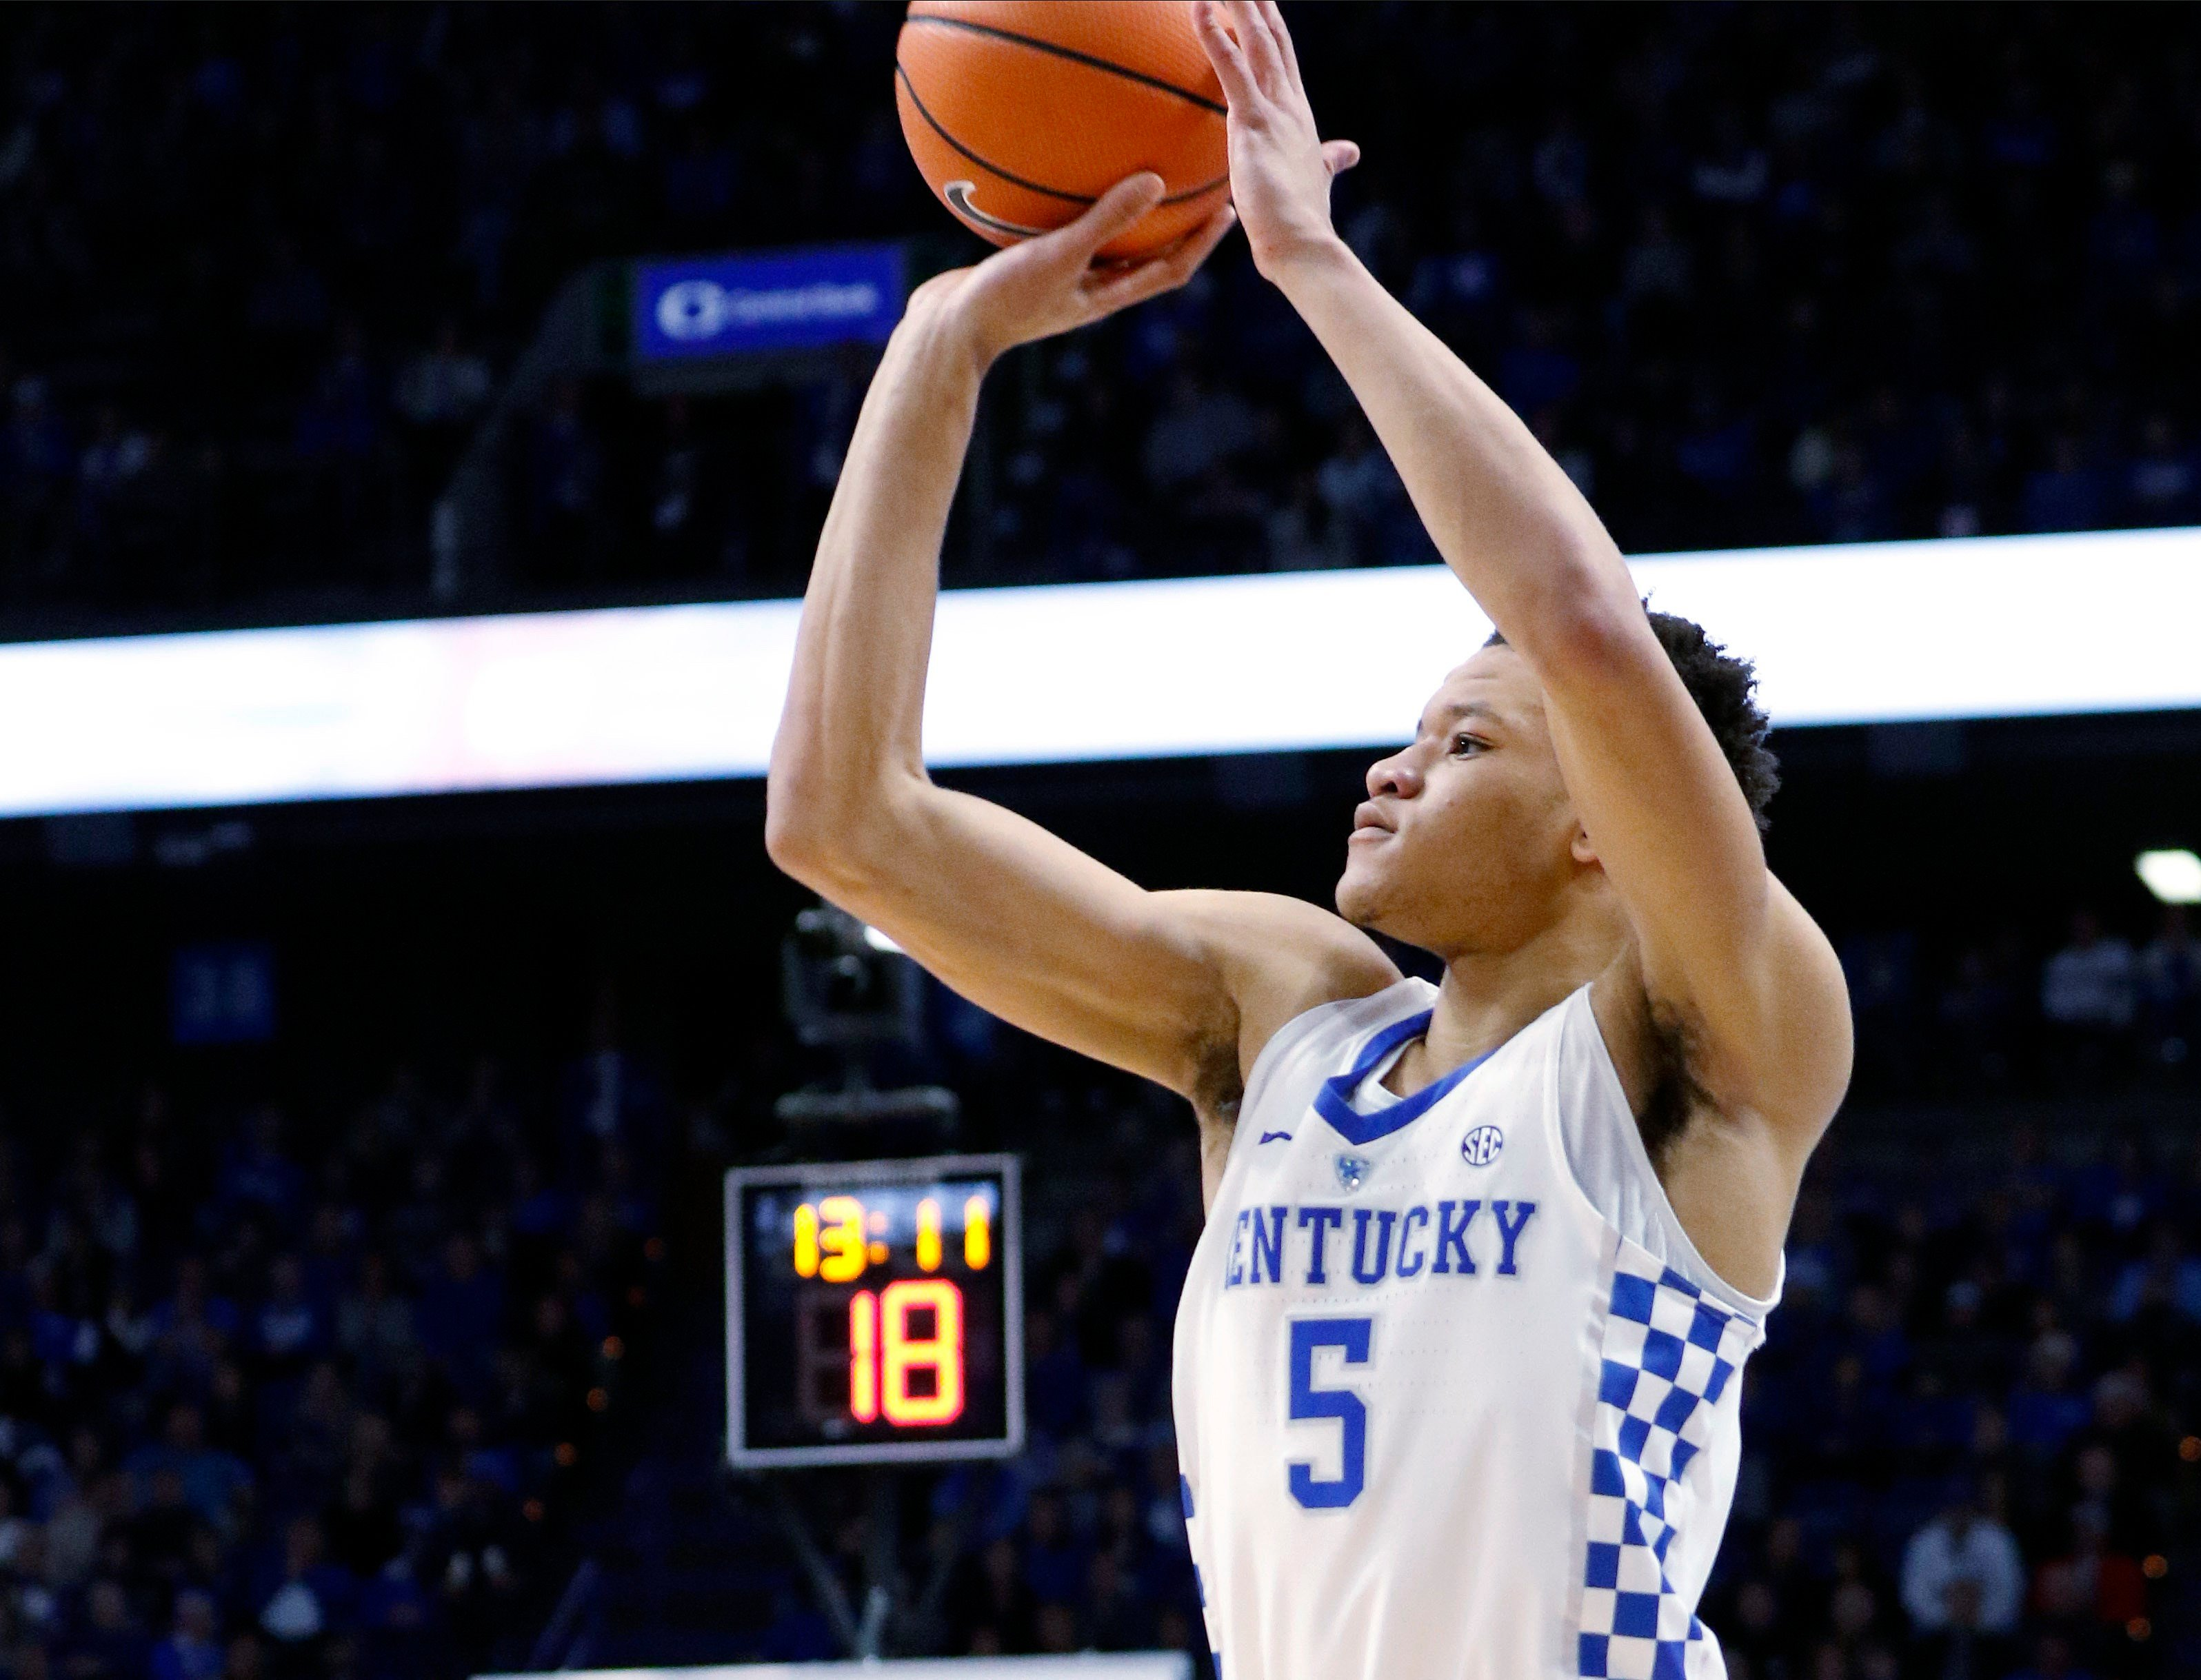 Freshman trio powers Kentucky to 78-65 win over Mississippi State